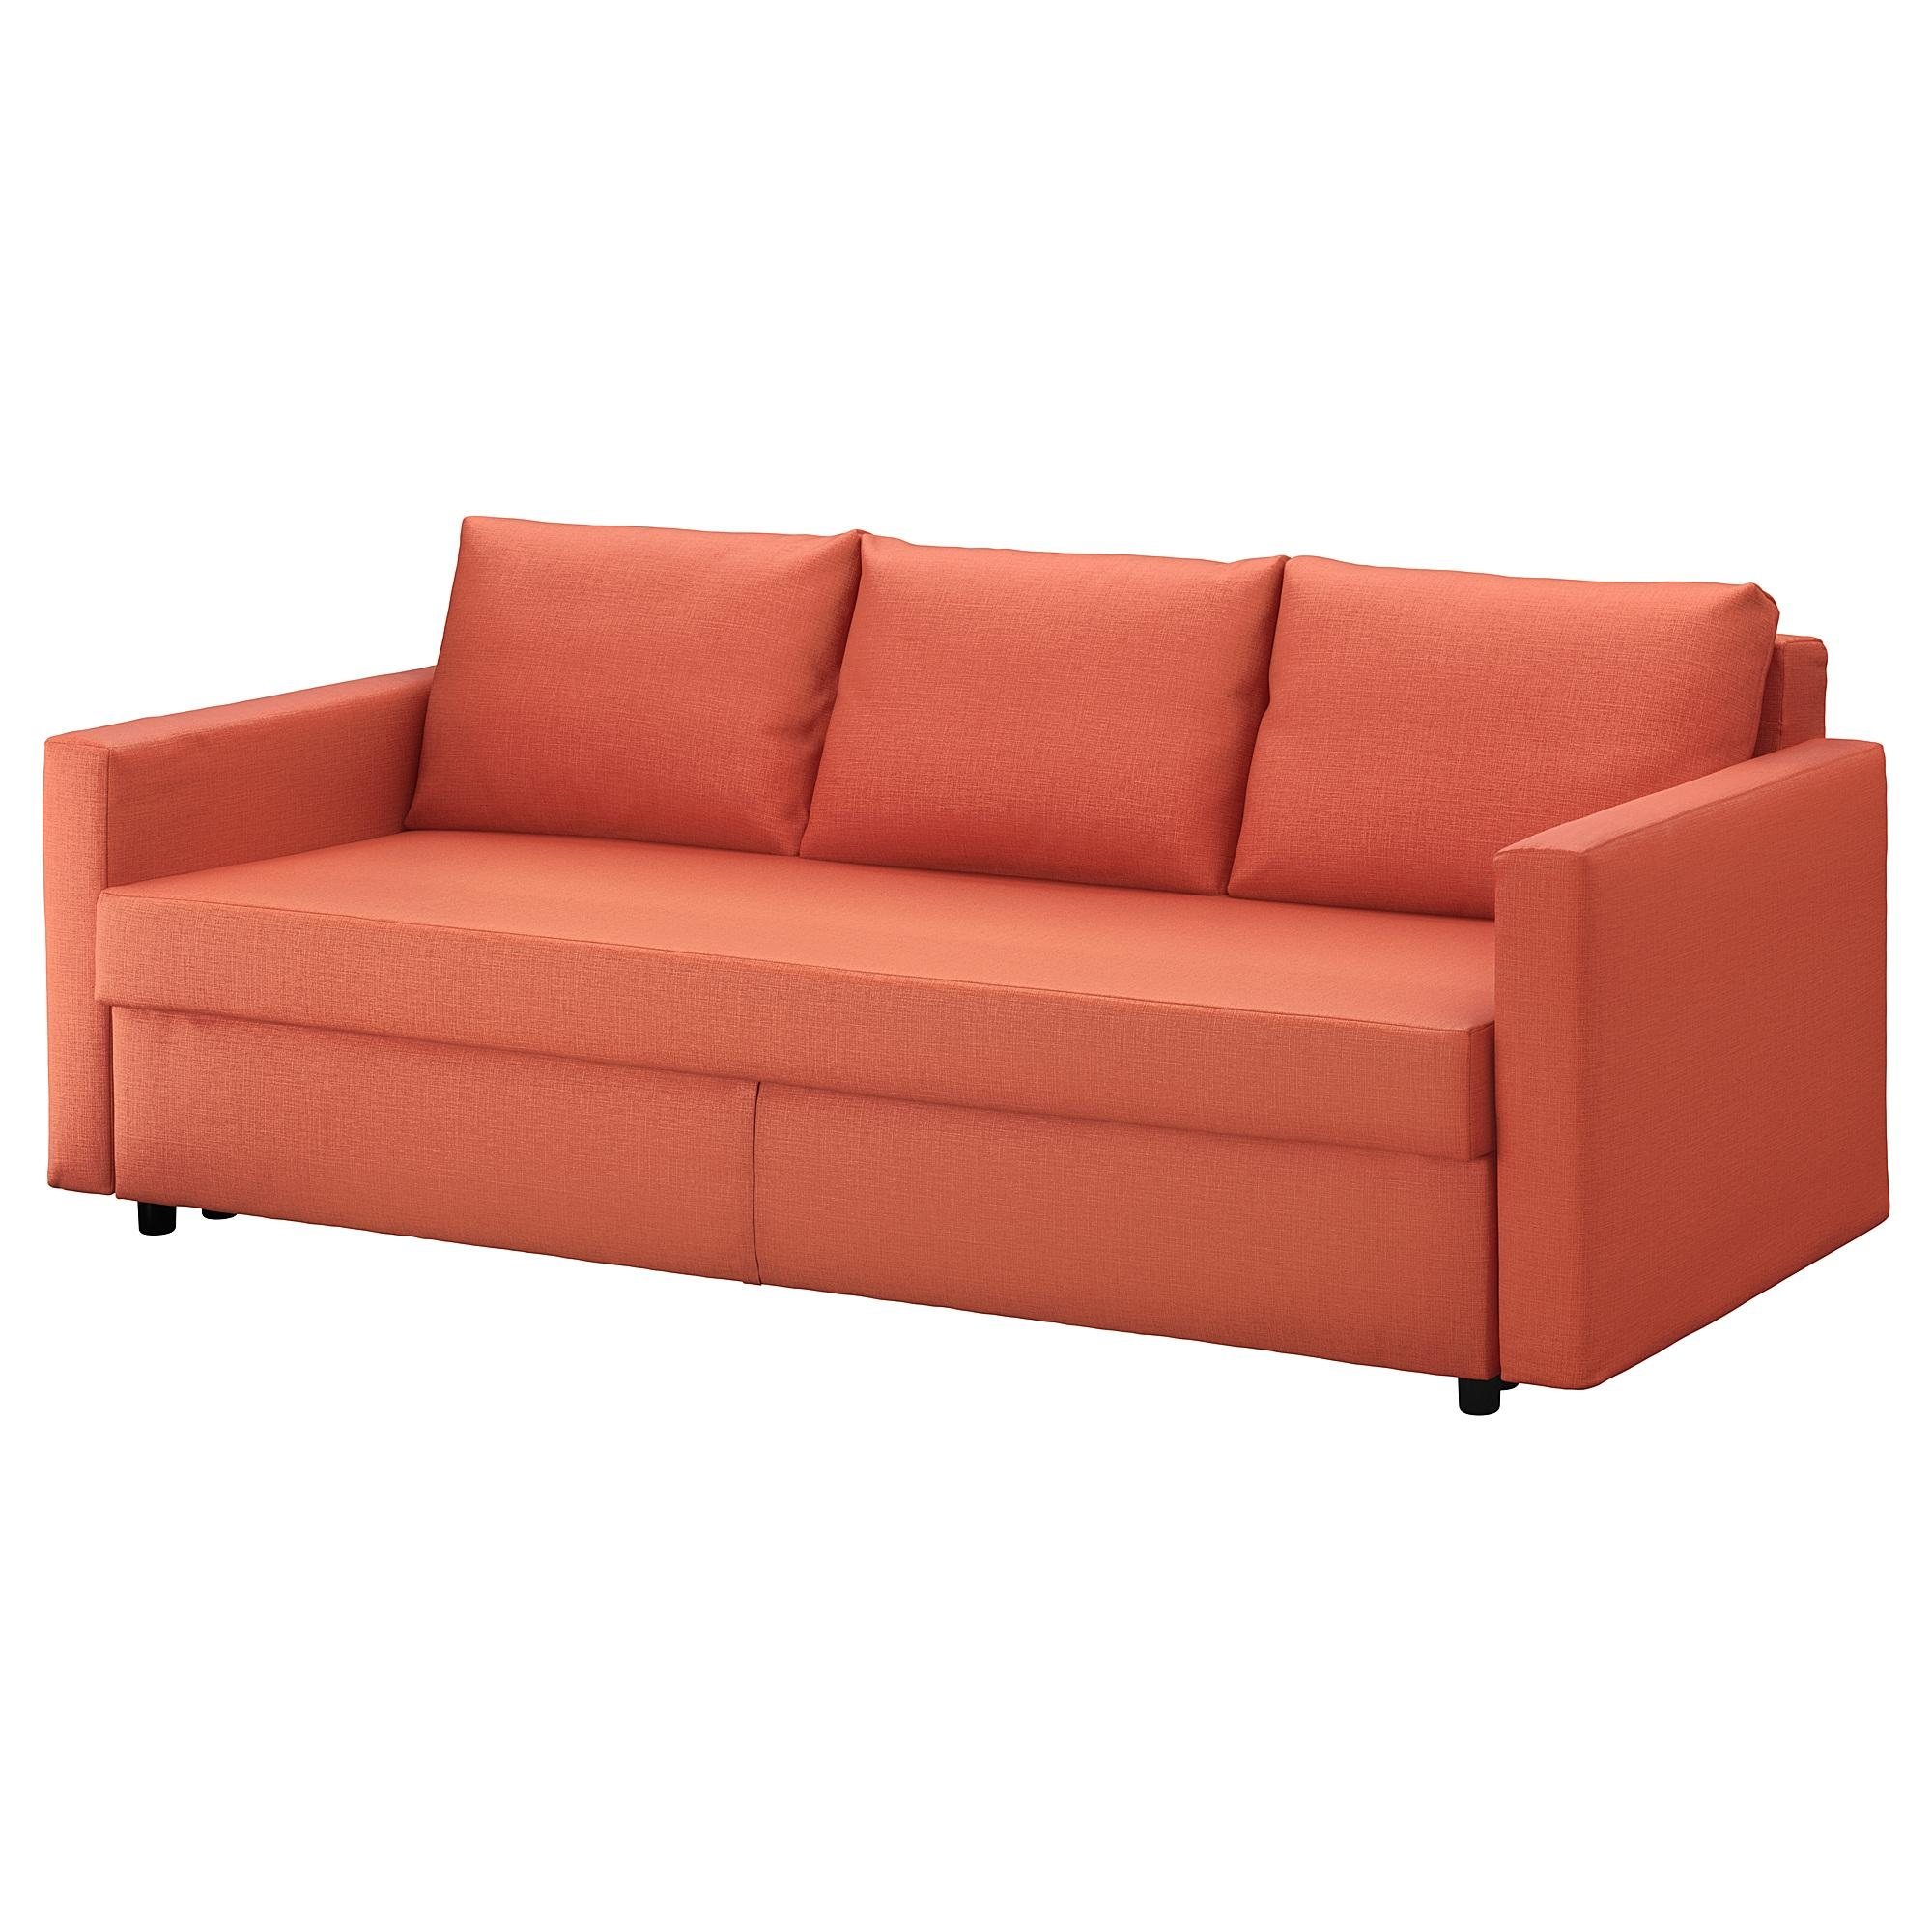 Friheten Sleeper Sofa – Skiftebo Dark Orange – Ikea In Red Sofa Beds Ikea (Image 9 of 20)